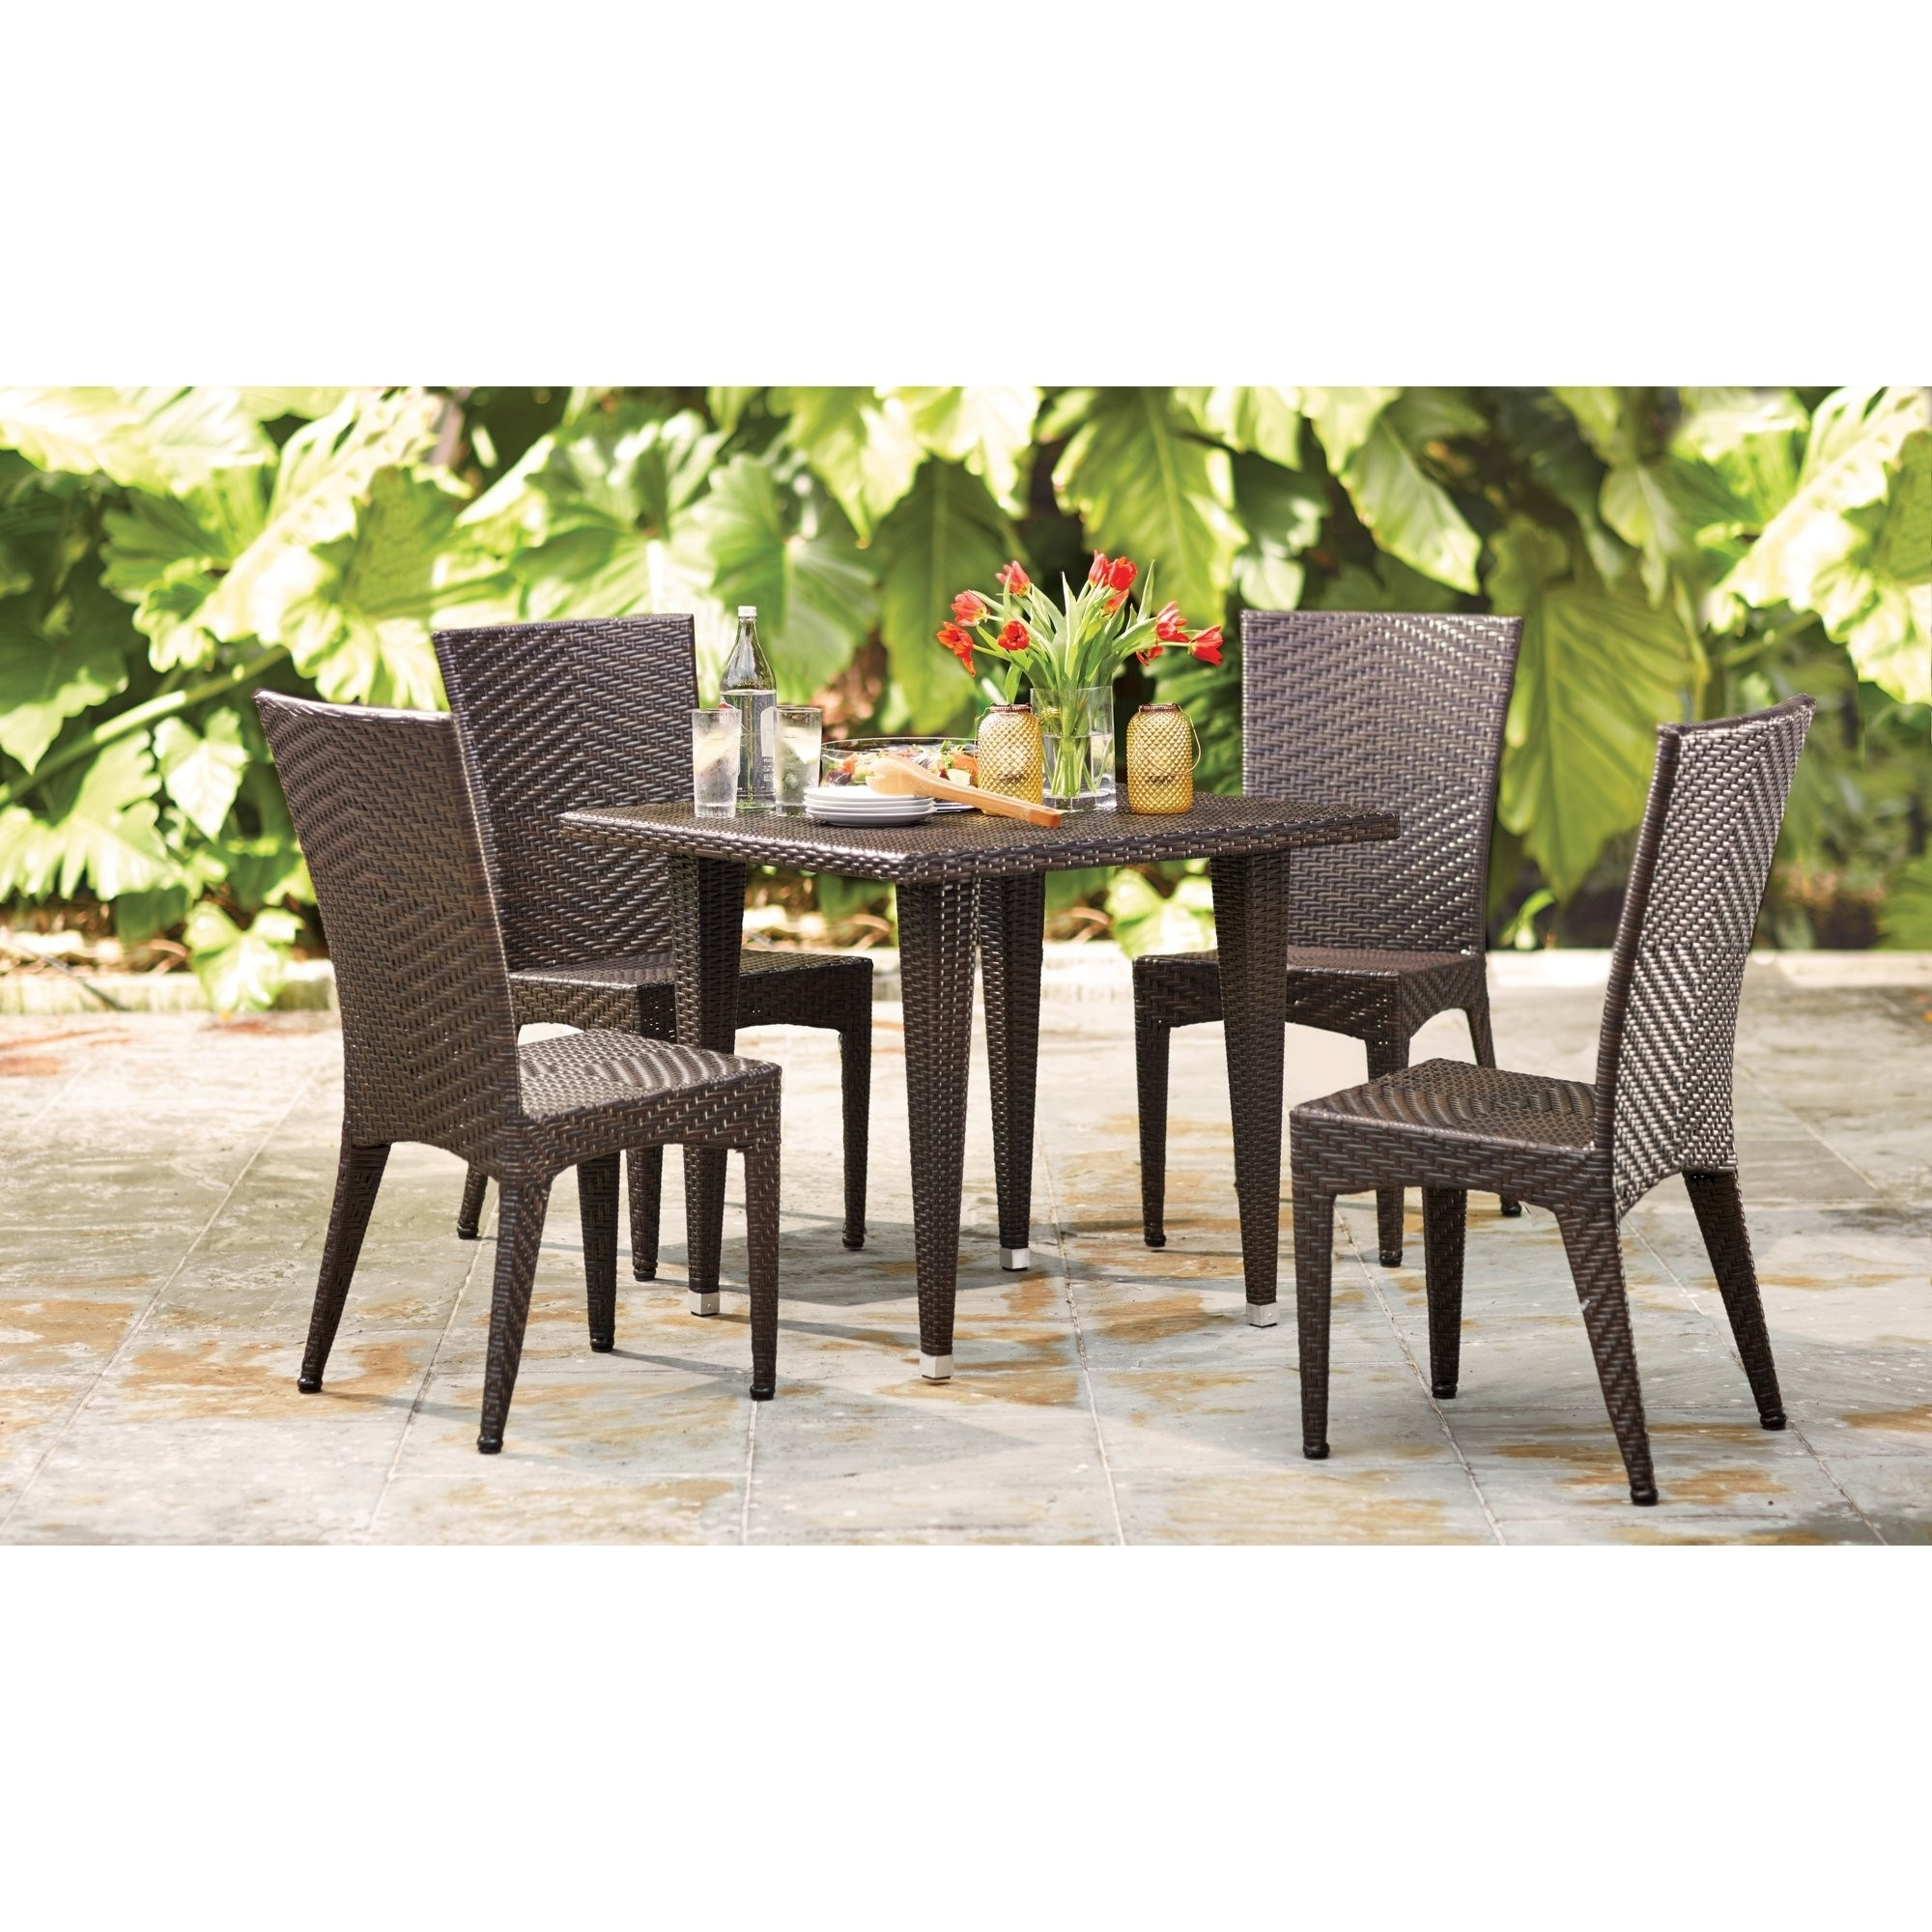 Fun Wayfair Patio Furniture Clearance Wayfair Outdoor Furniture For Best And Newest Wayfair Patio Umbrellas (View 9 of 20)